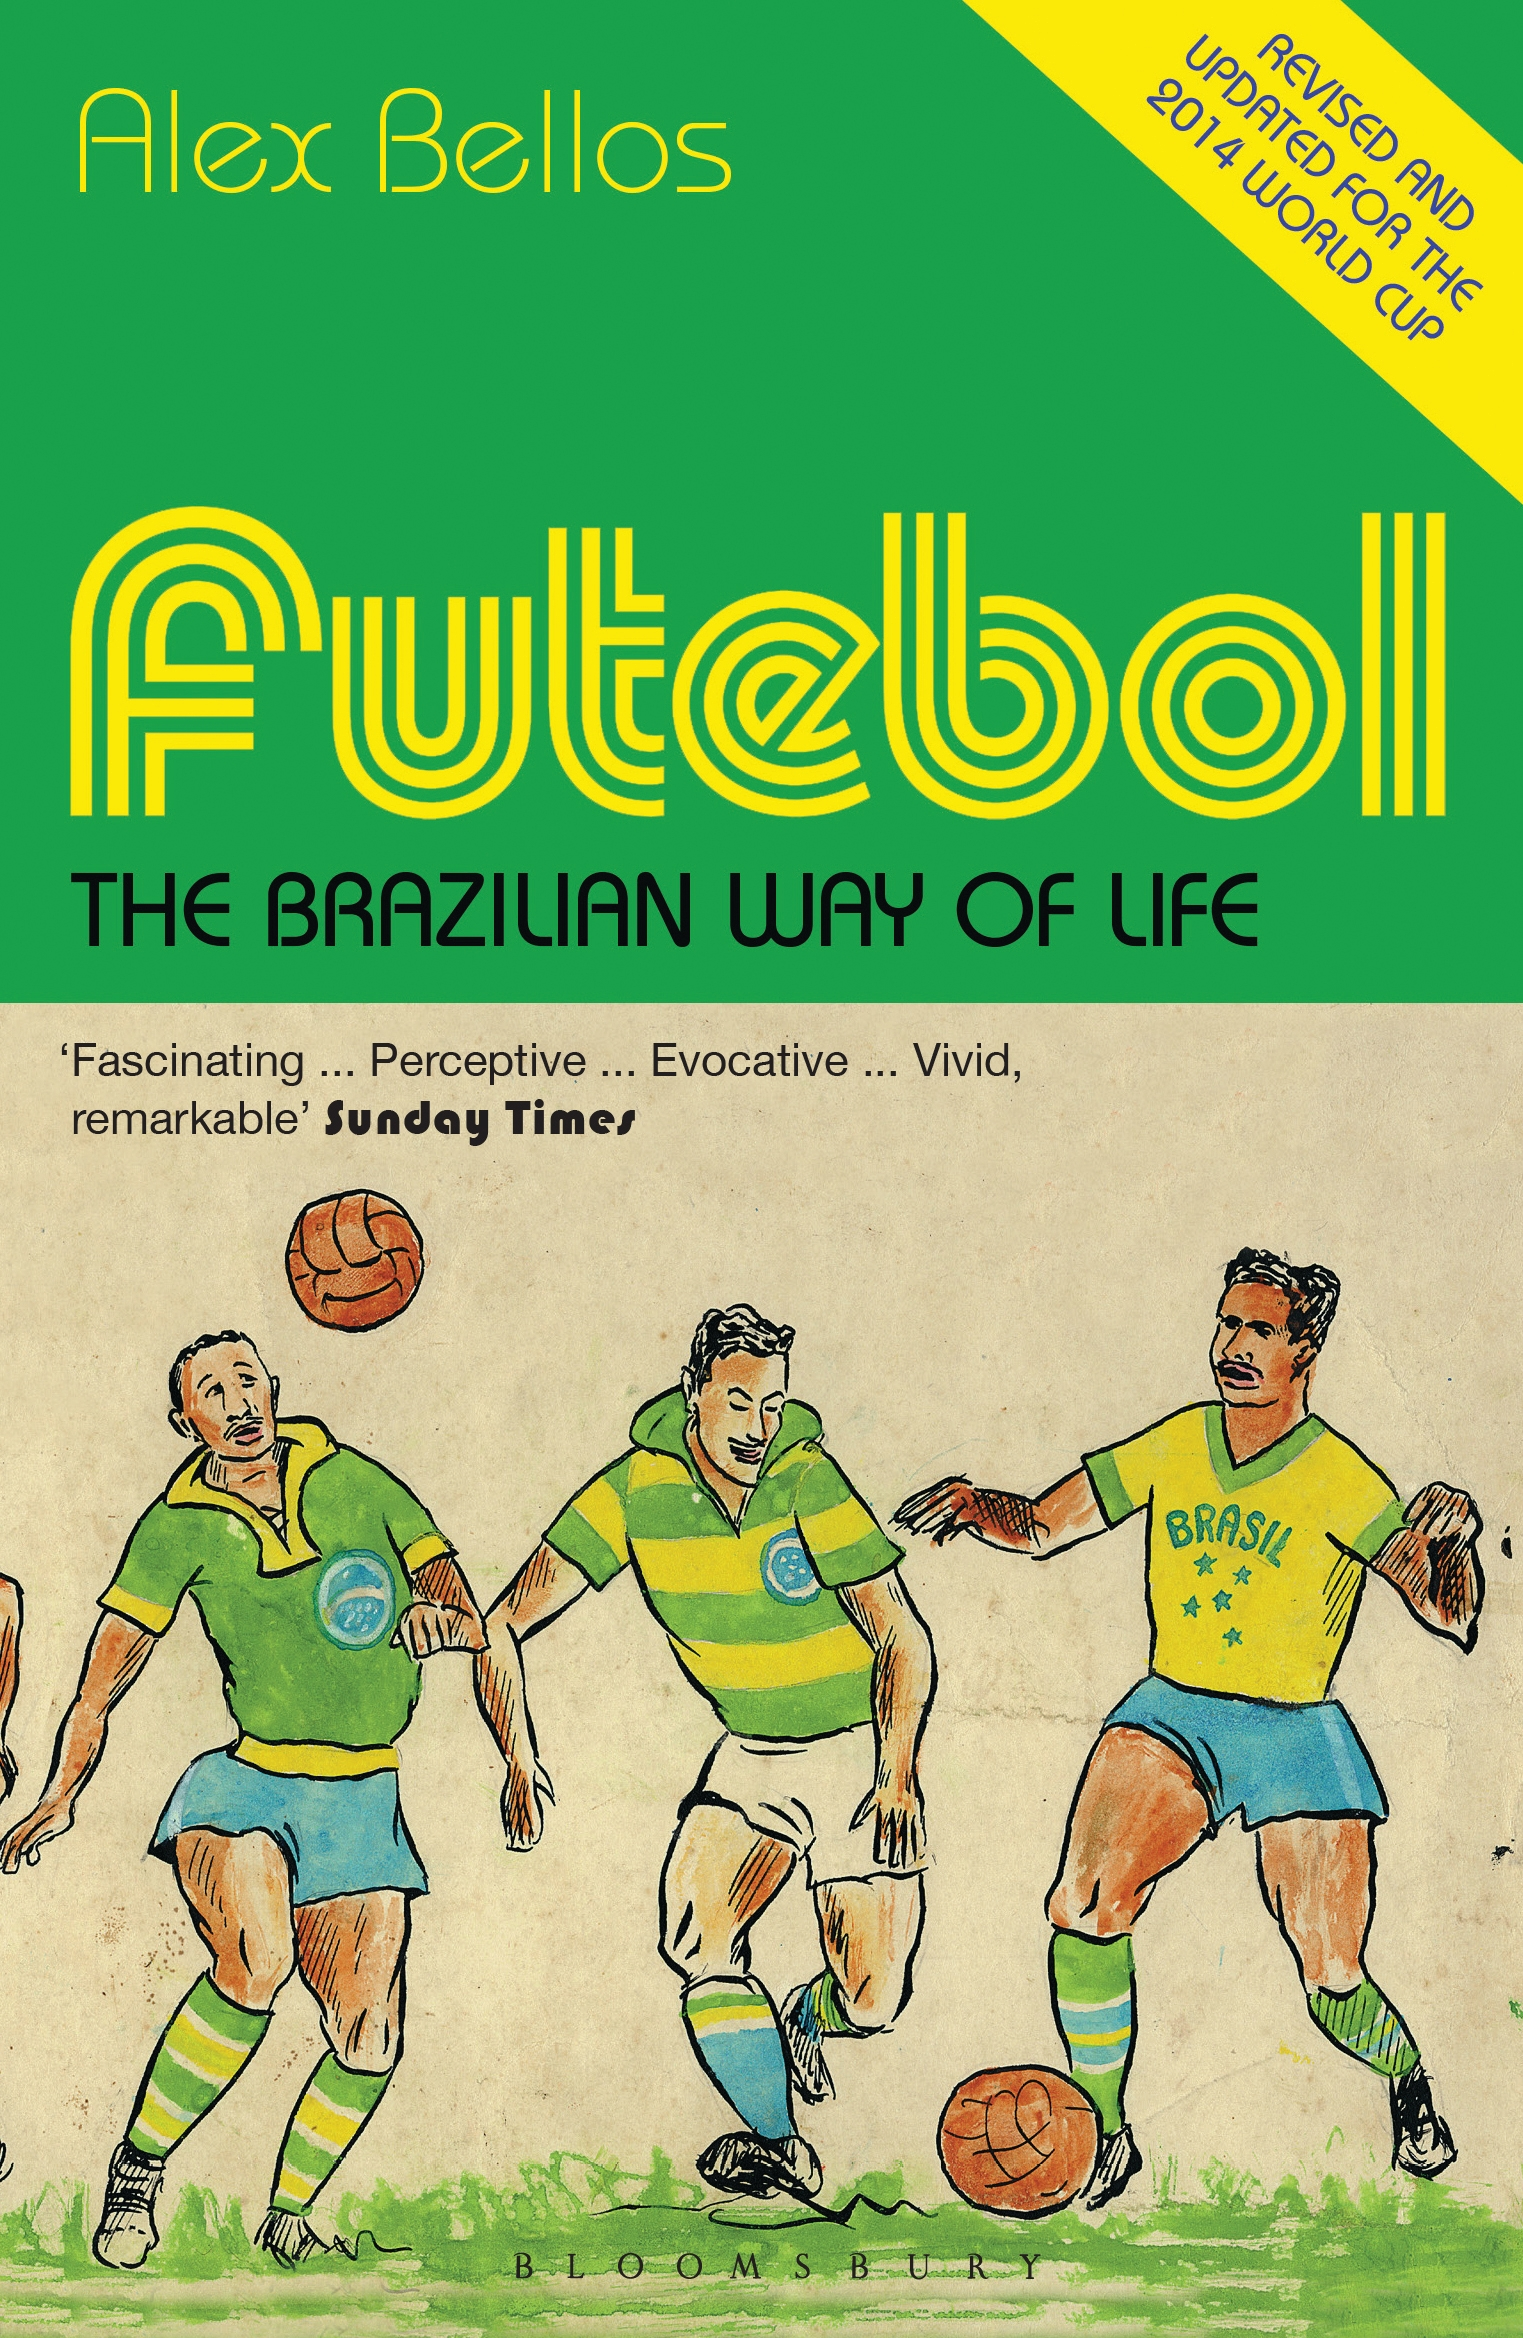 Futebol The Brazilian Way of Life - Updated Edition